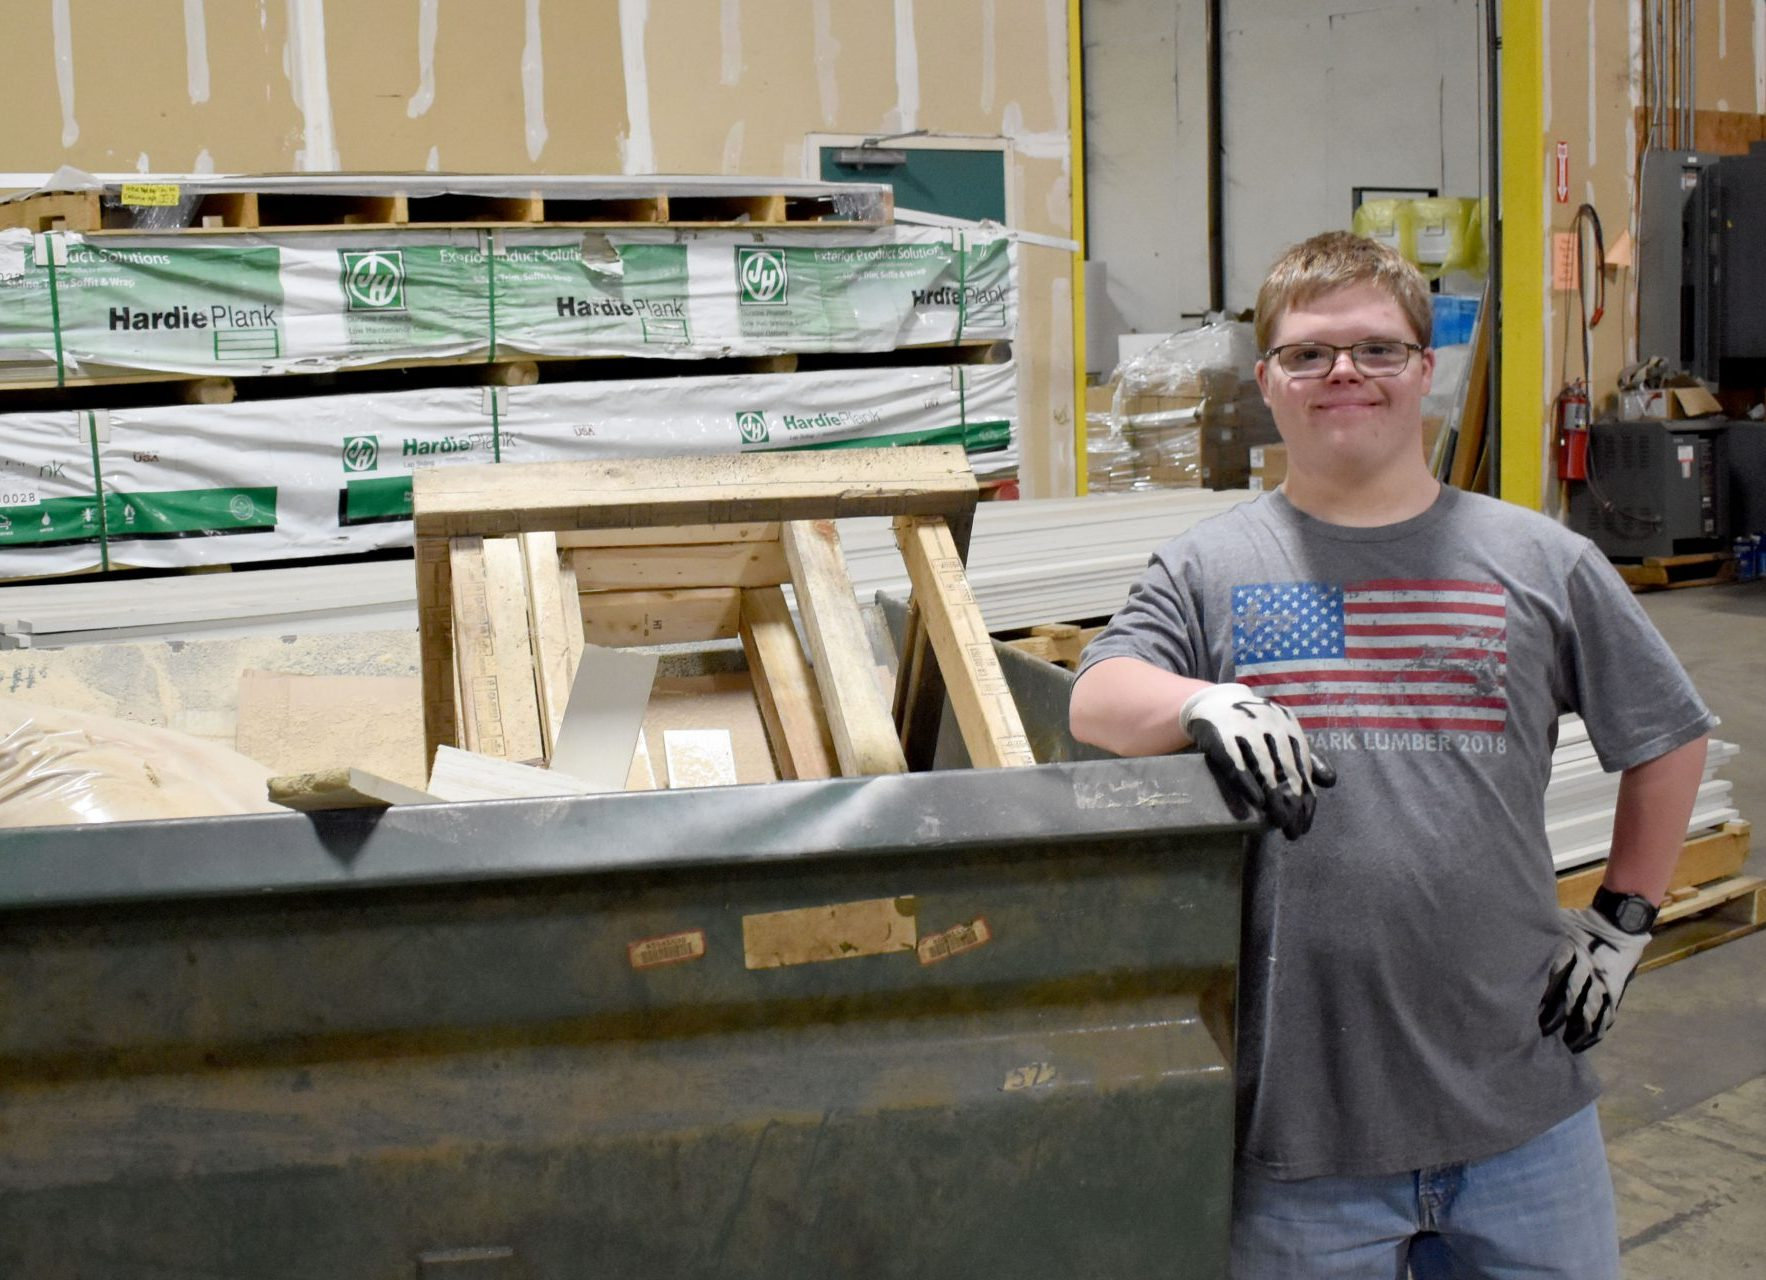 a man poses for a photo in a warehouse